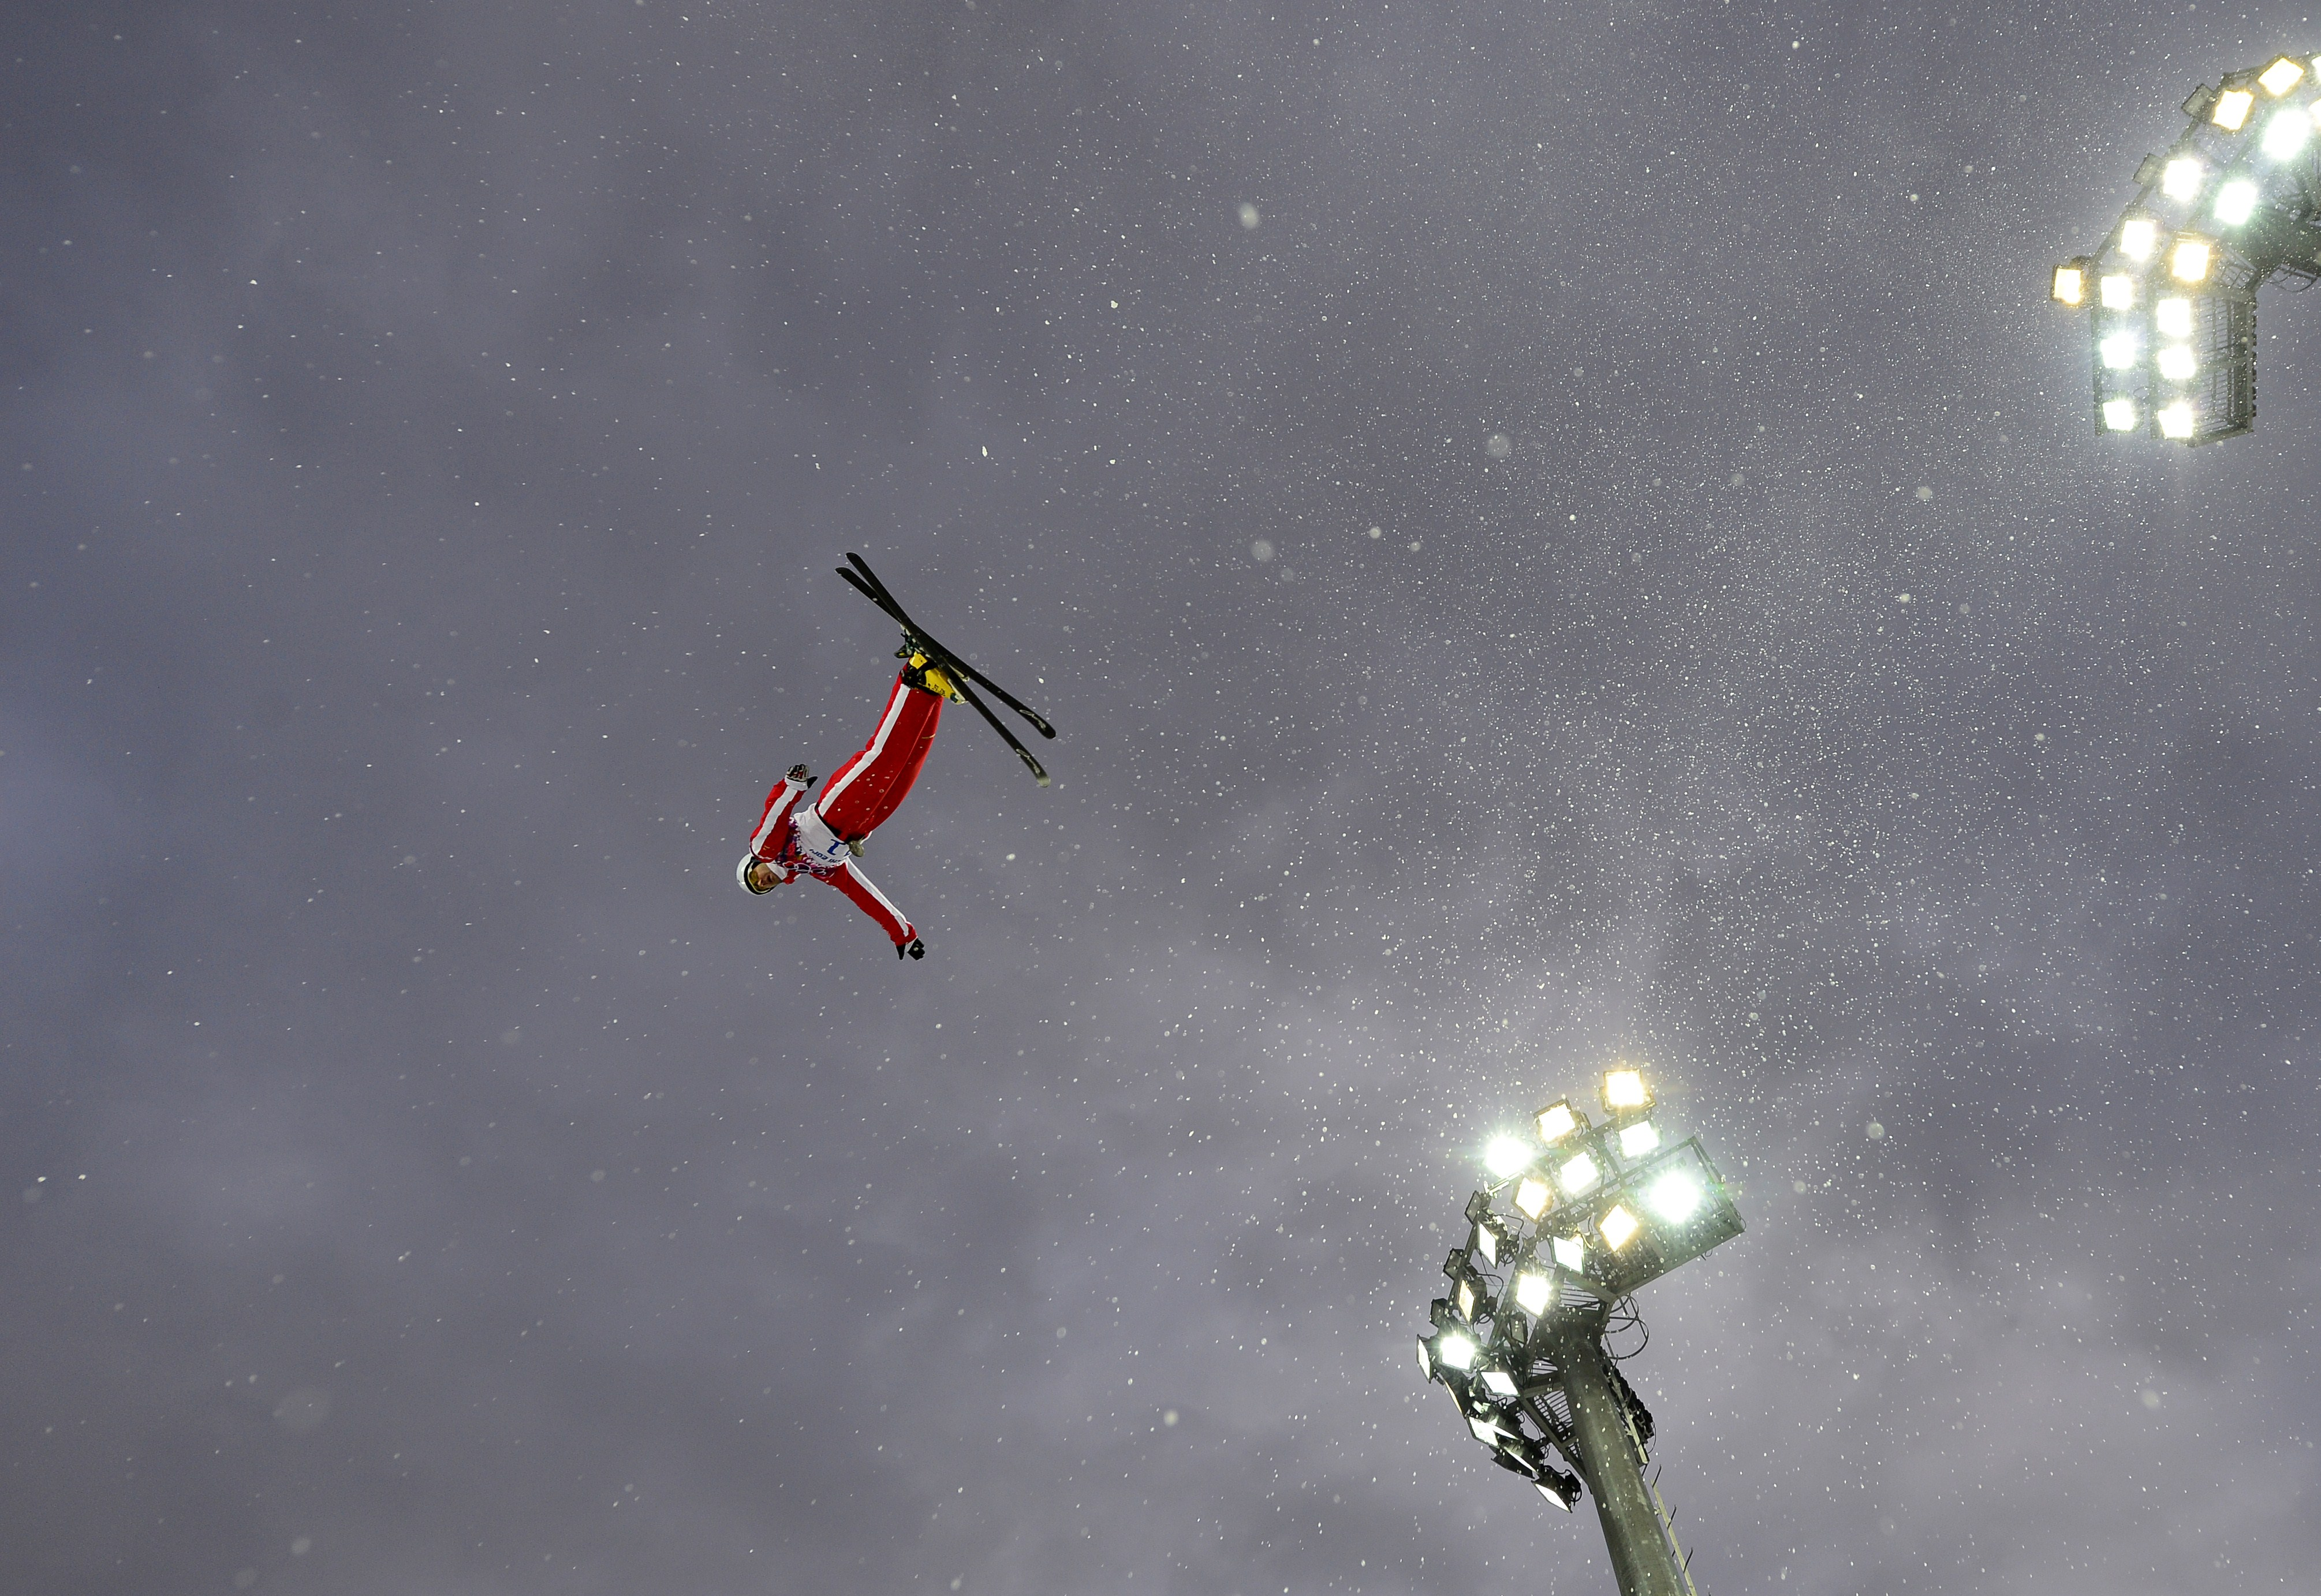 Switzerland's Renato Ulrich competes in the Men's Freestyle Skiing Aerials qualifications.